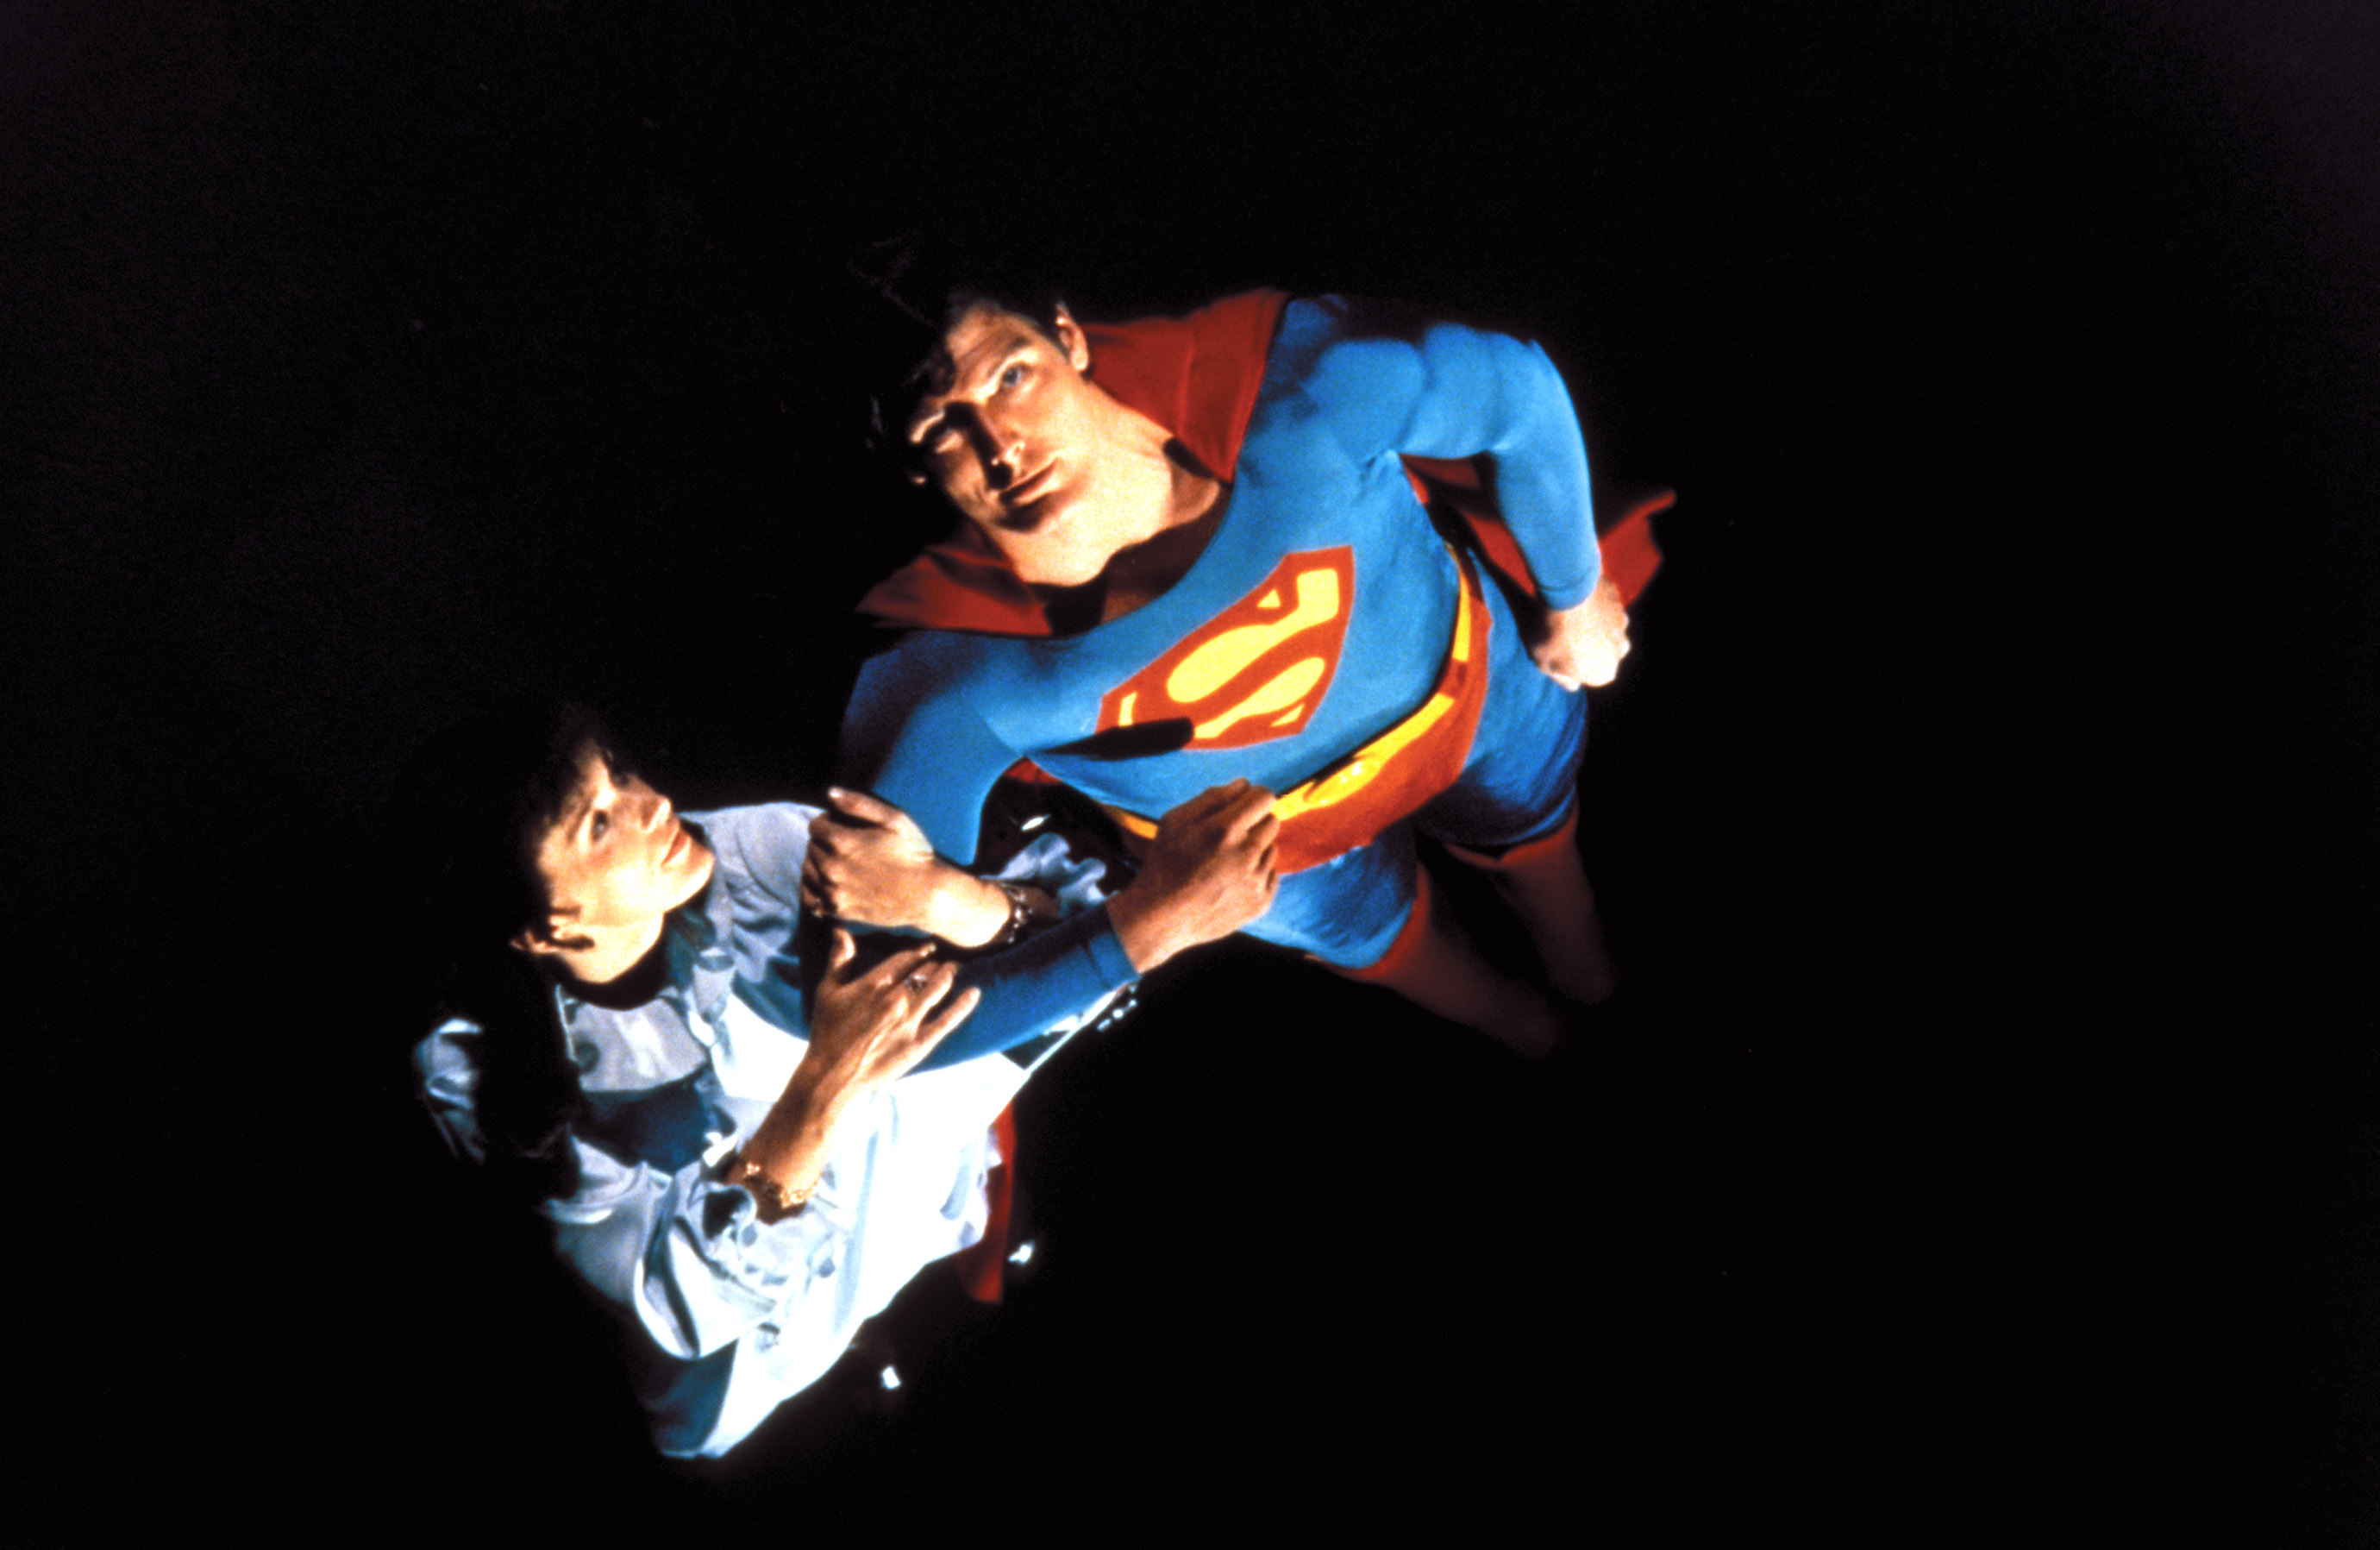 superman-margot-kidder-christopher-reeve